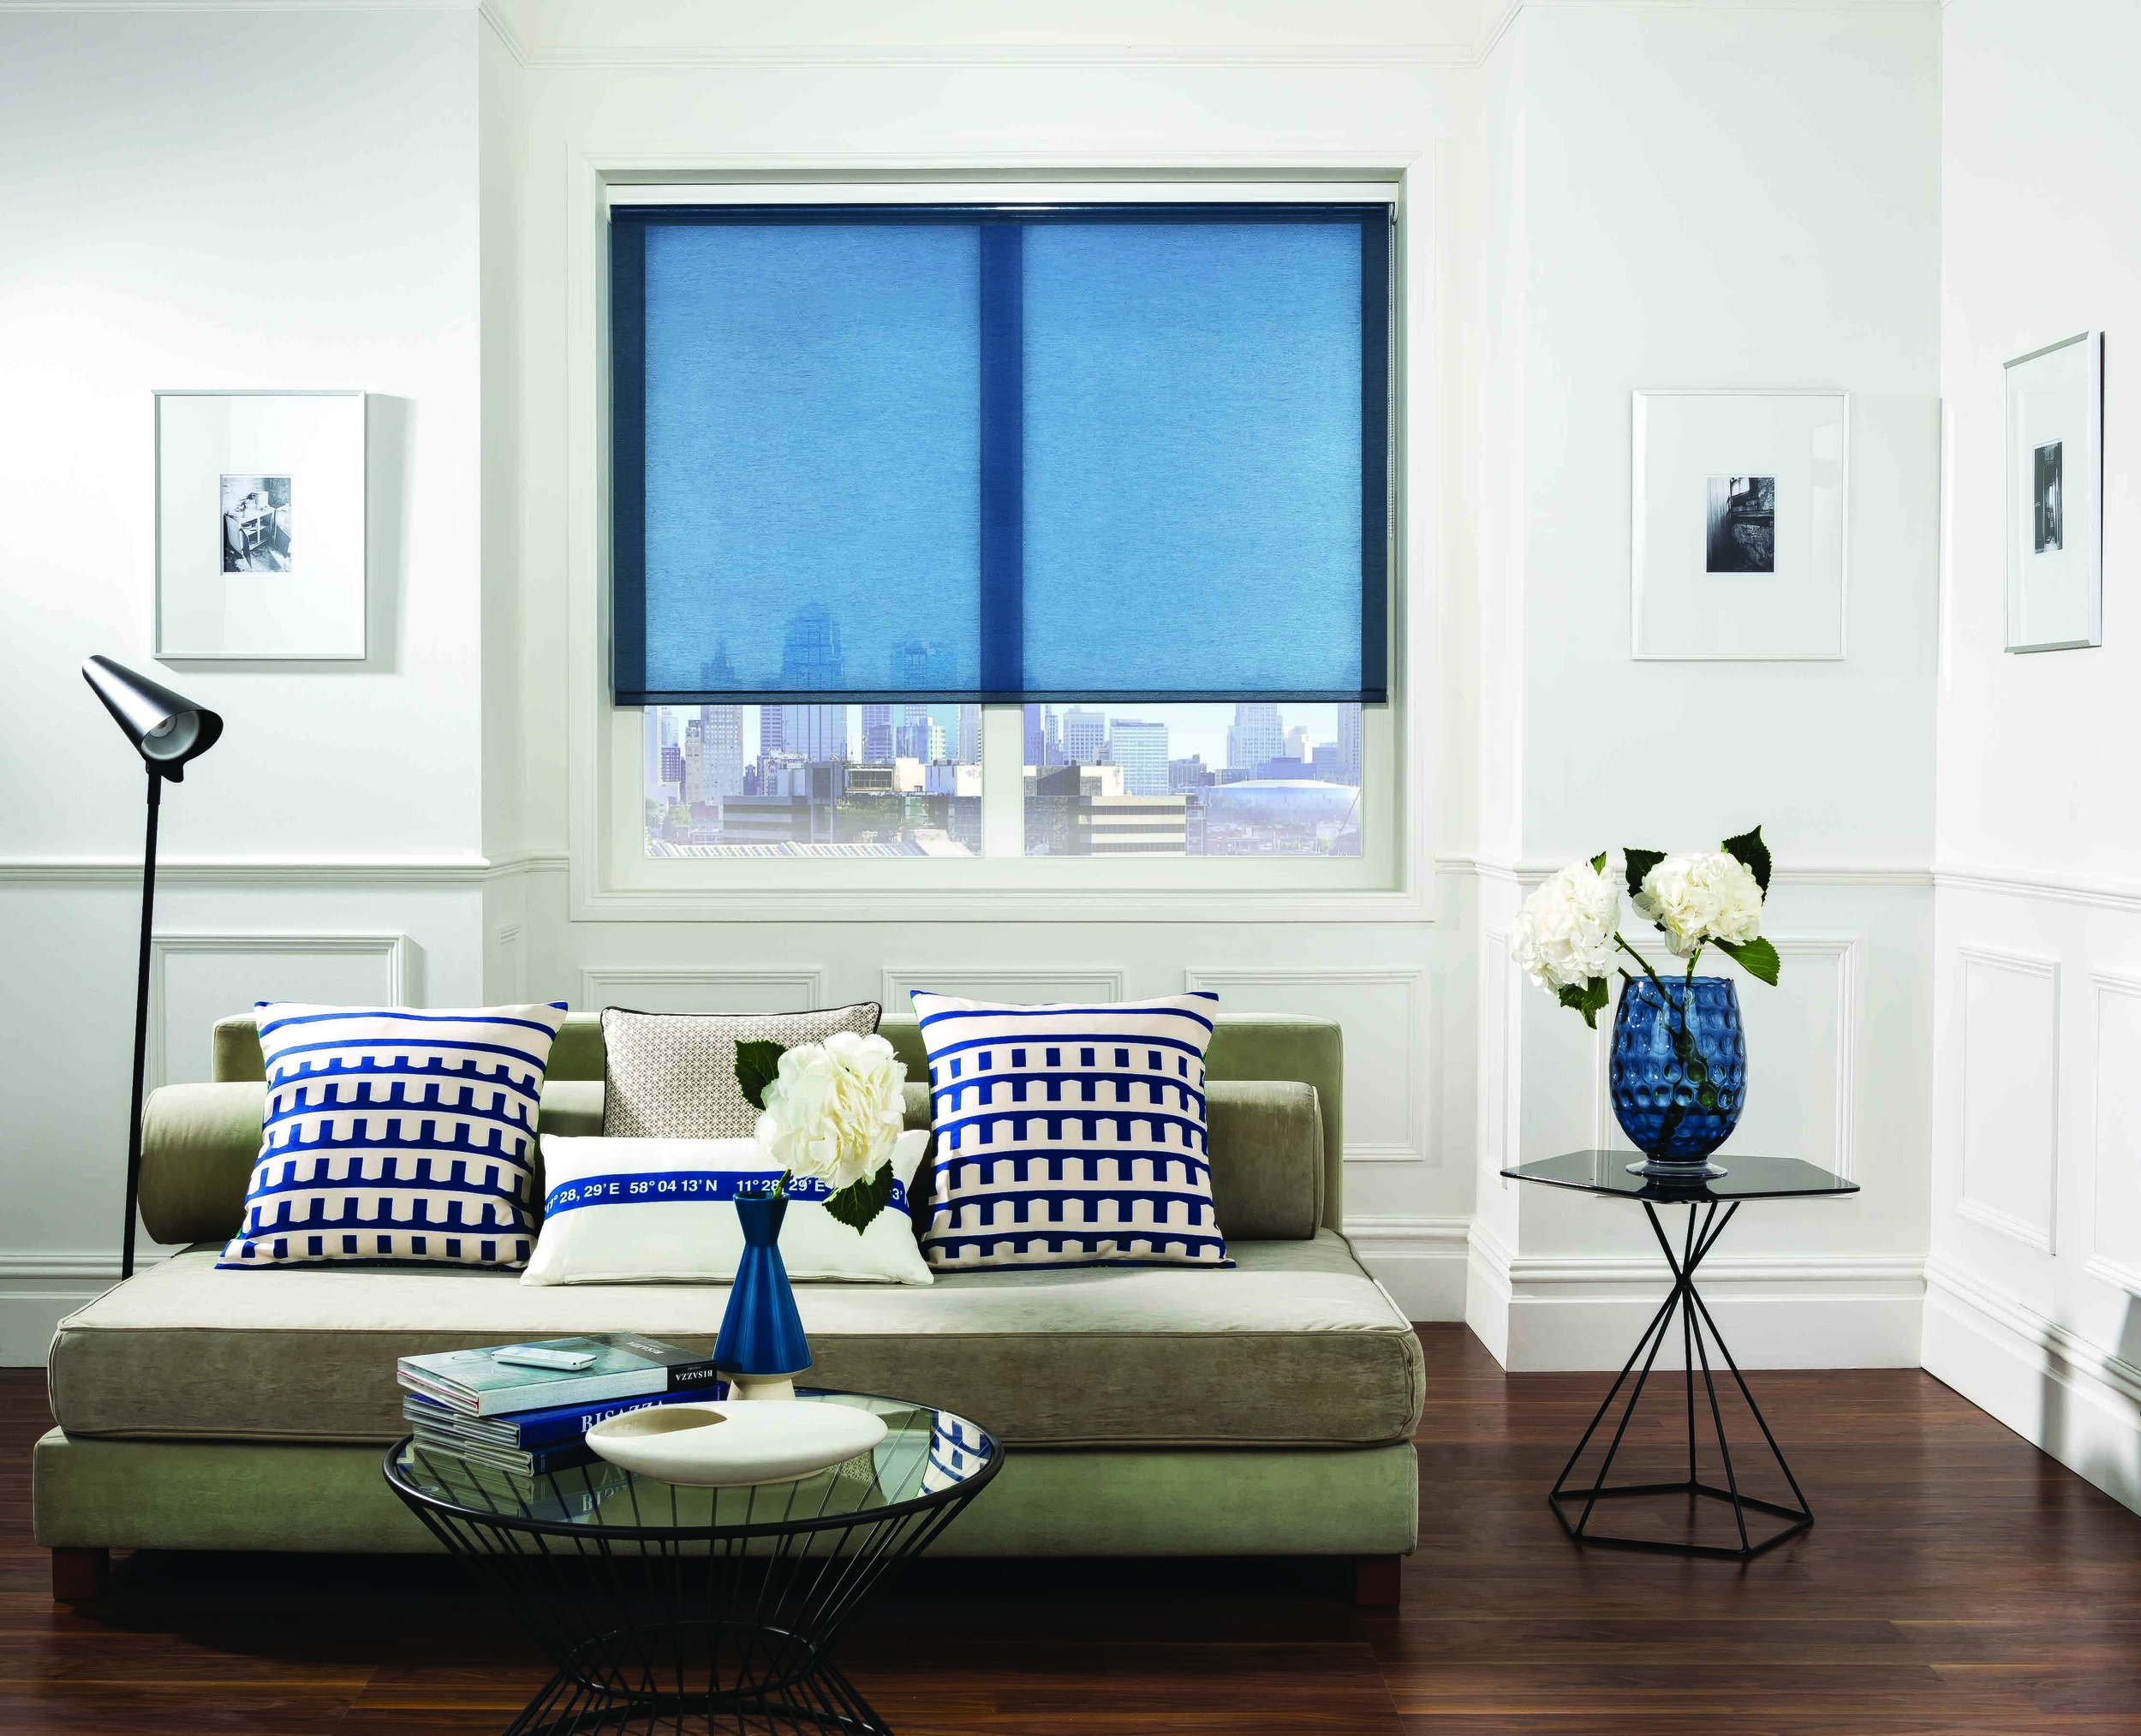 Roller Blinds      A popular option in any room. Available in a wide variety of fabrics, patterns, colours and styles. Our roller blinds can also be customised with shaped bottoms, braids, poles and decorative pulls and trims.